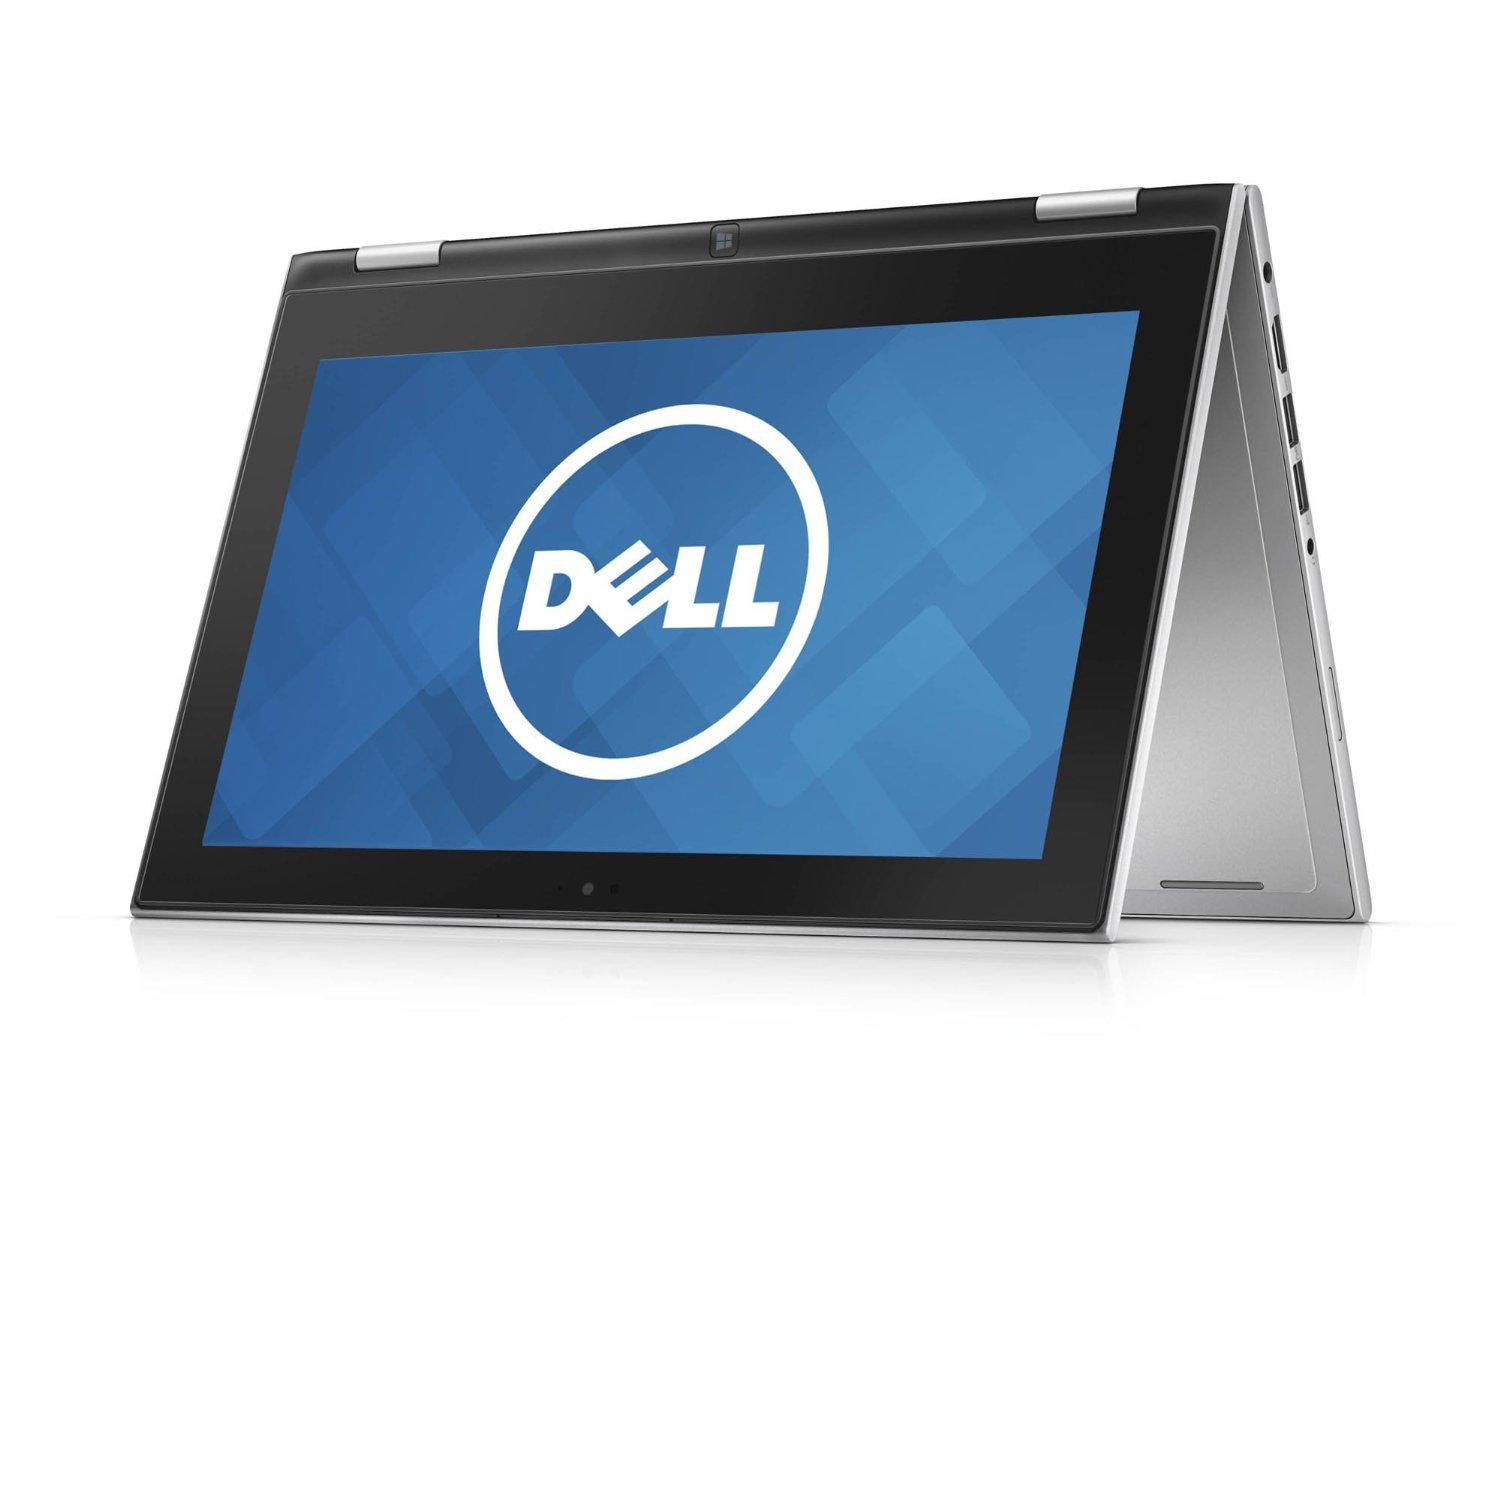 Buy dell inspiron 3148 116 inch laptop core i34gb500gb hdd buy dell inspiron 3148 116 inch laptop core i34gb500gb hddwindows 81intel hd graphics online at low prices in india amazon sciox Image collections